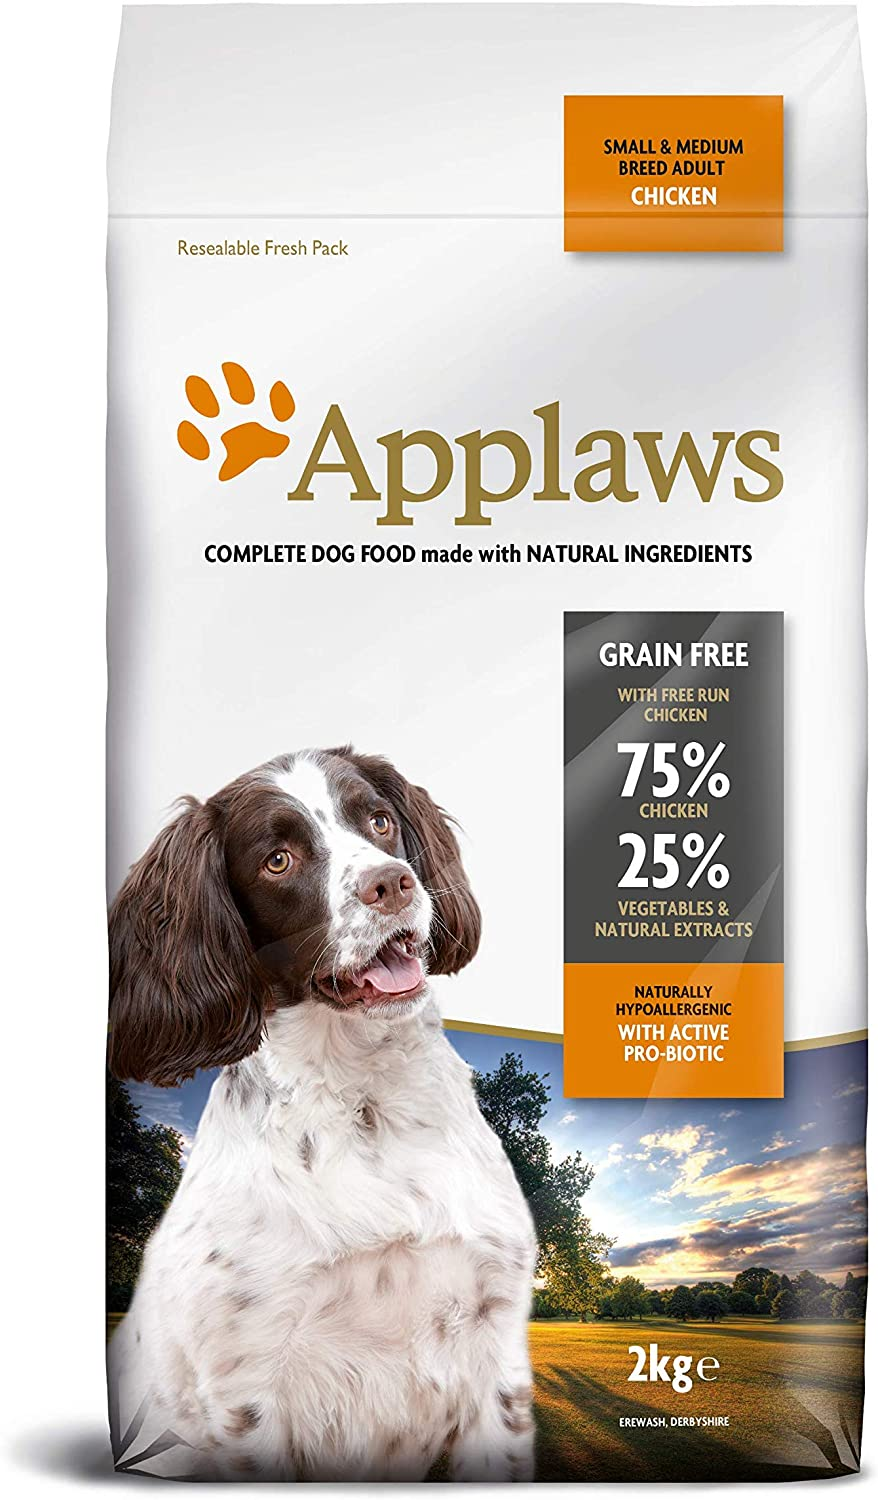 Applaws Dry Dog 2 kg Bag Chicken Small and Medium Breed